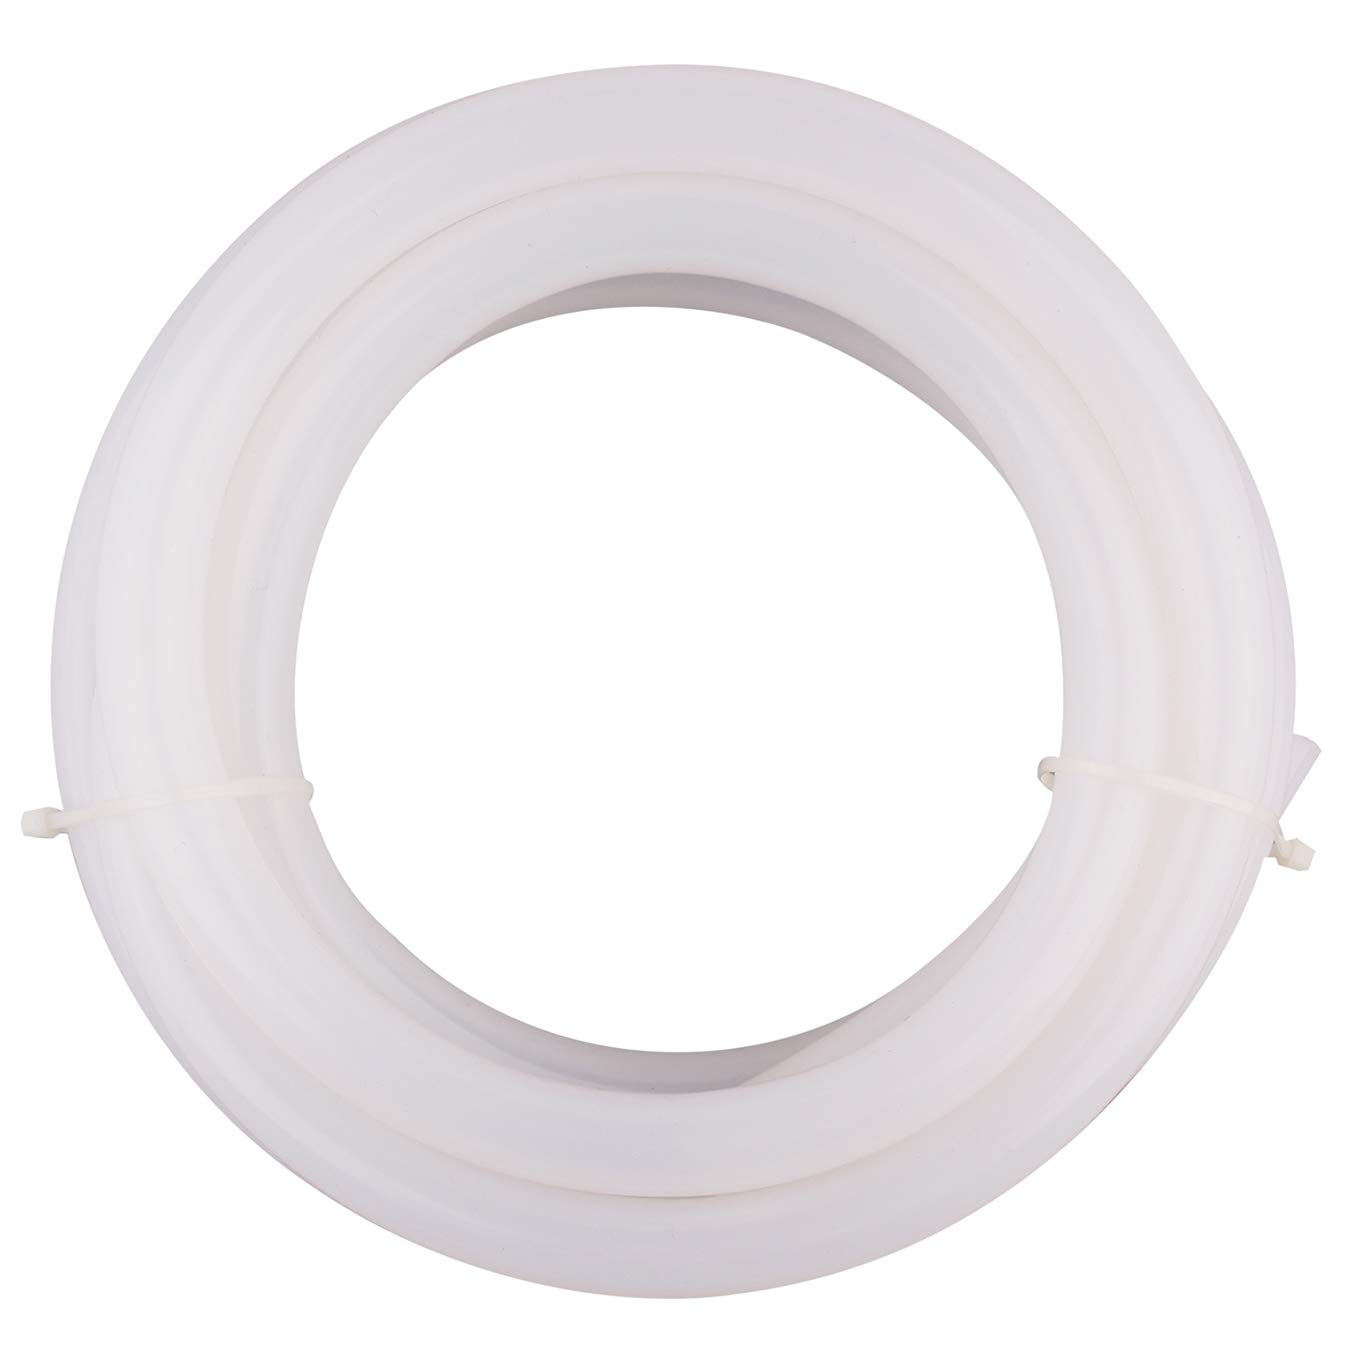 DERPIPE Silicone Tubing - 3/8'' ID 5/8''OD Food Grade Flexible Thick for Homebrewing Pump Transfer 3 Meters(10ft) Length